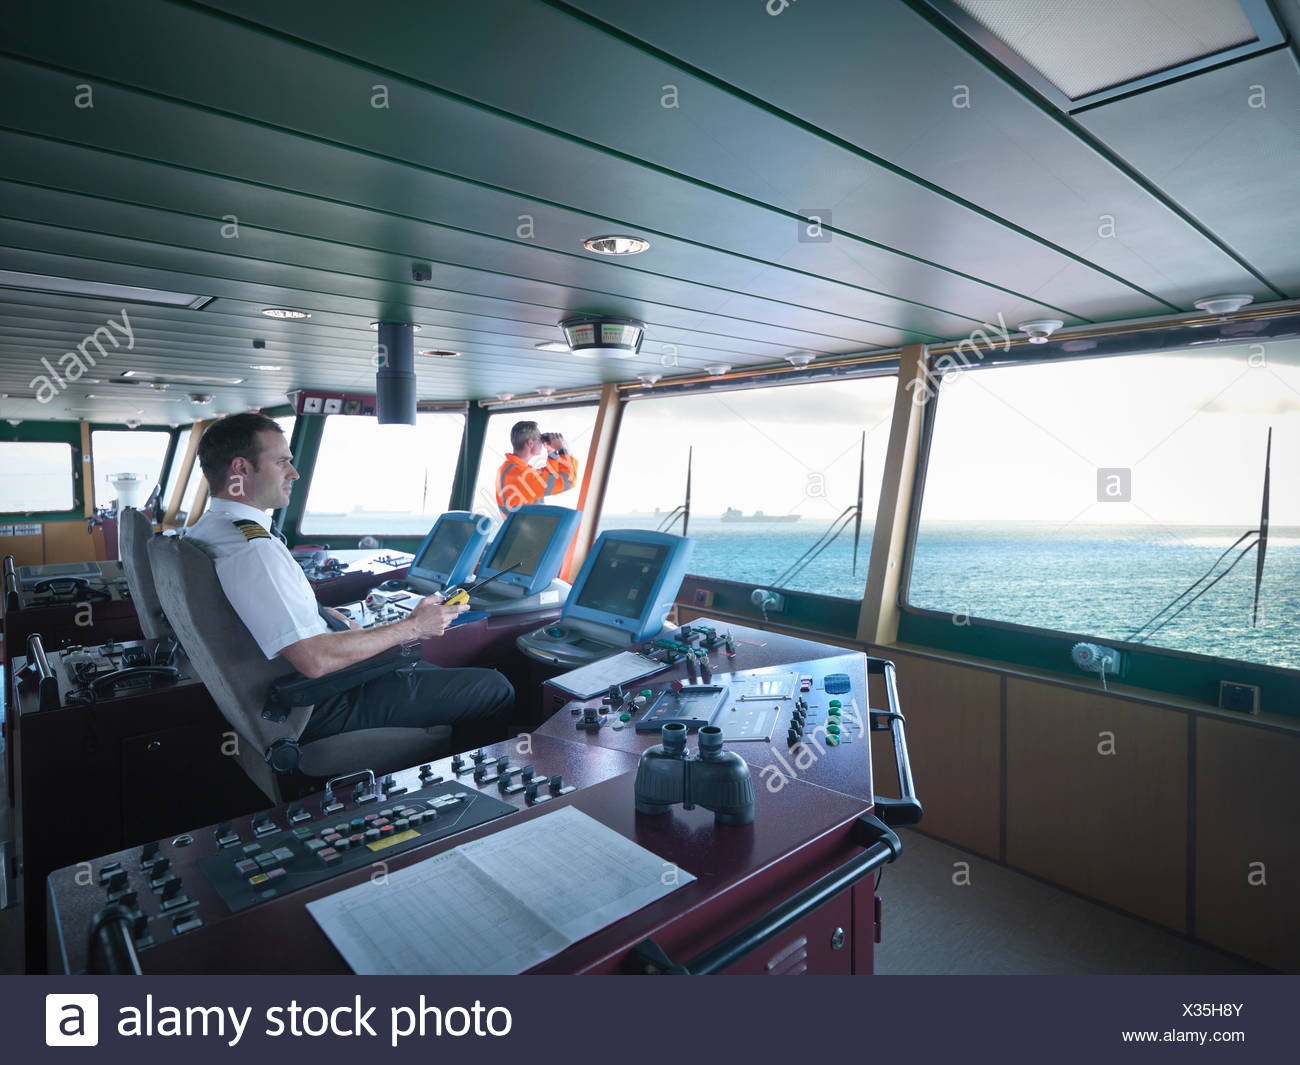 Captain and worker on bridge steering ship at sea - Stock Image